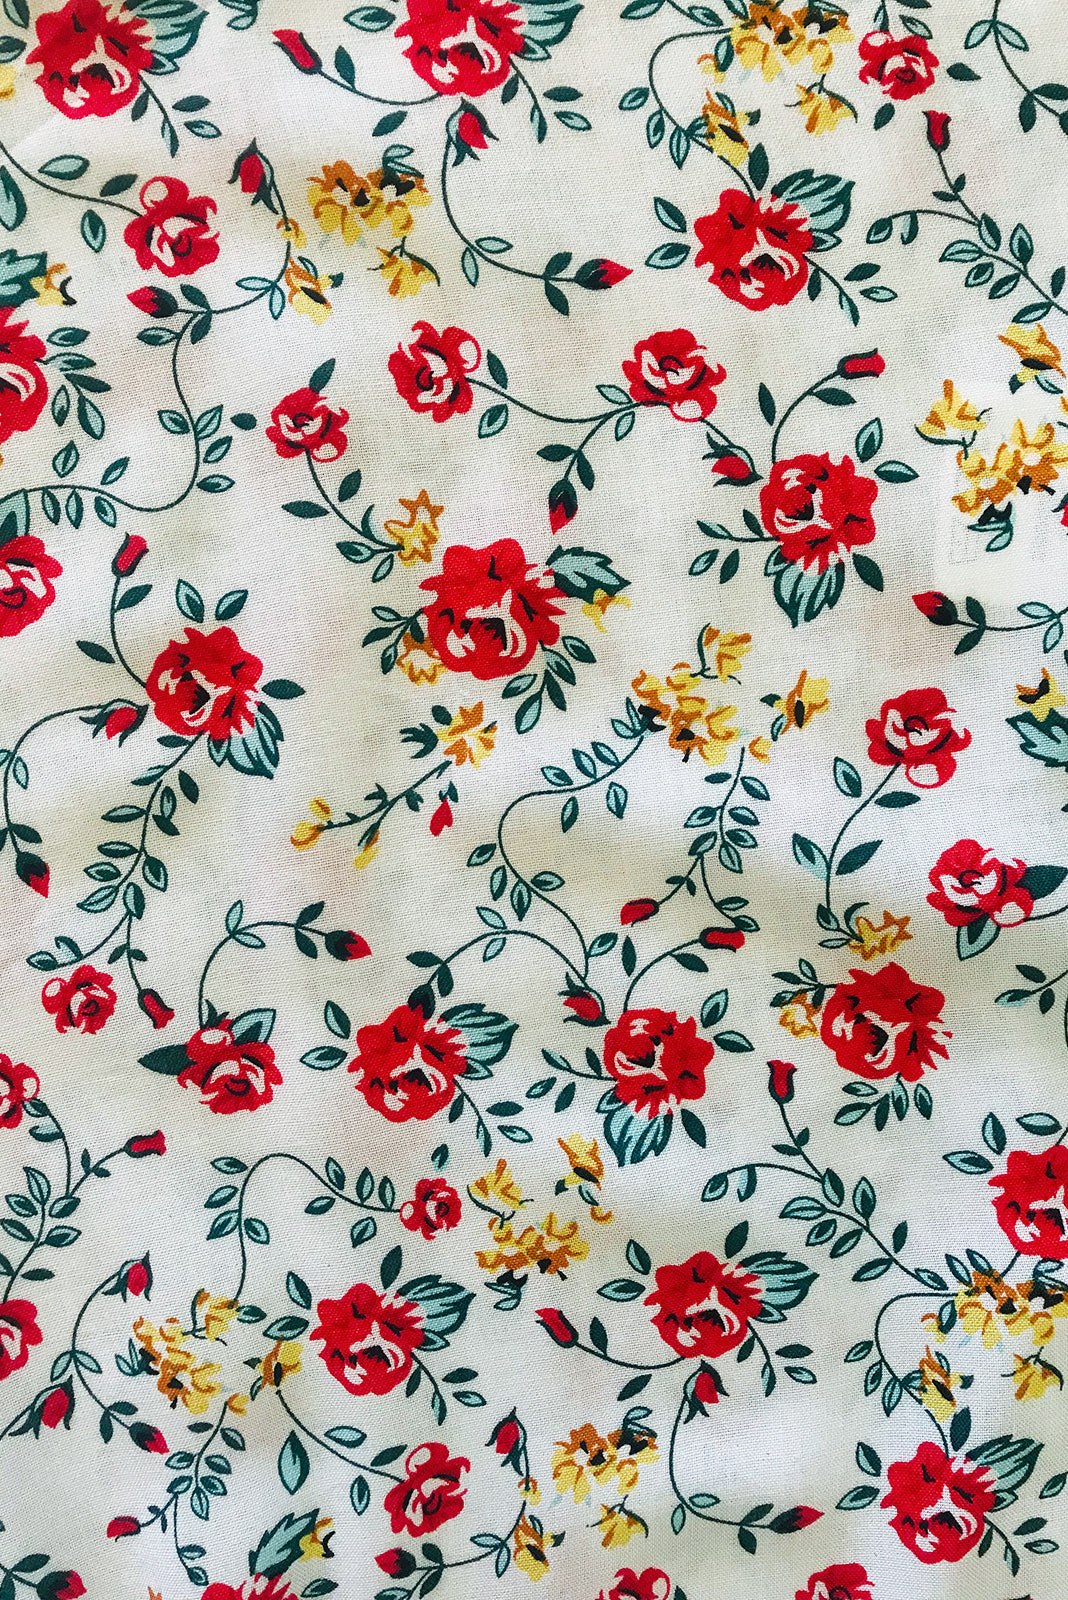 Fabric swatch, 100% woven viscose, white base with petite red, yellow and forest green rose floral print.